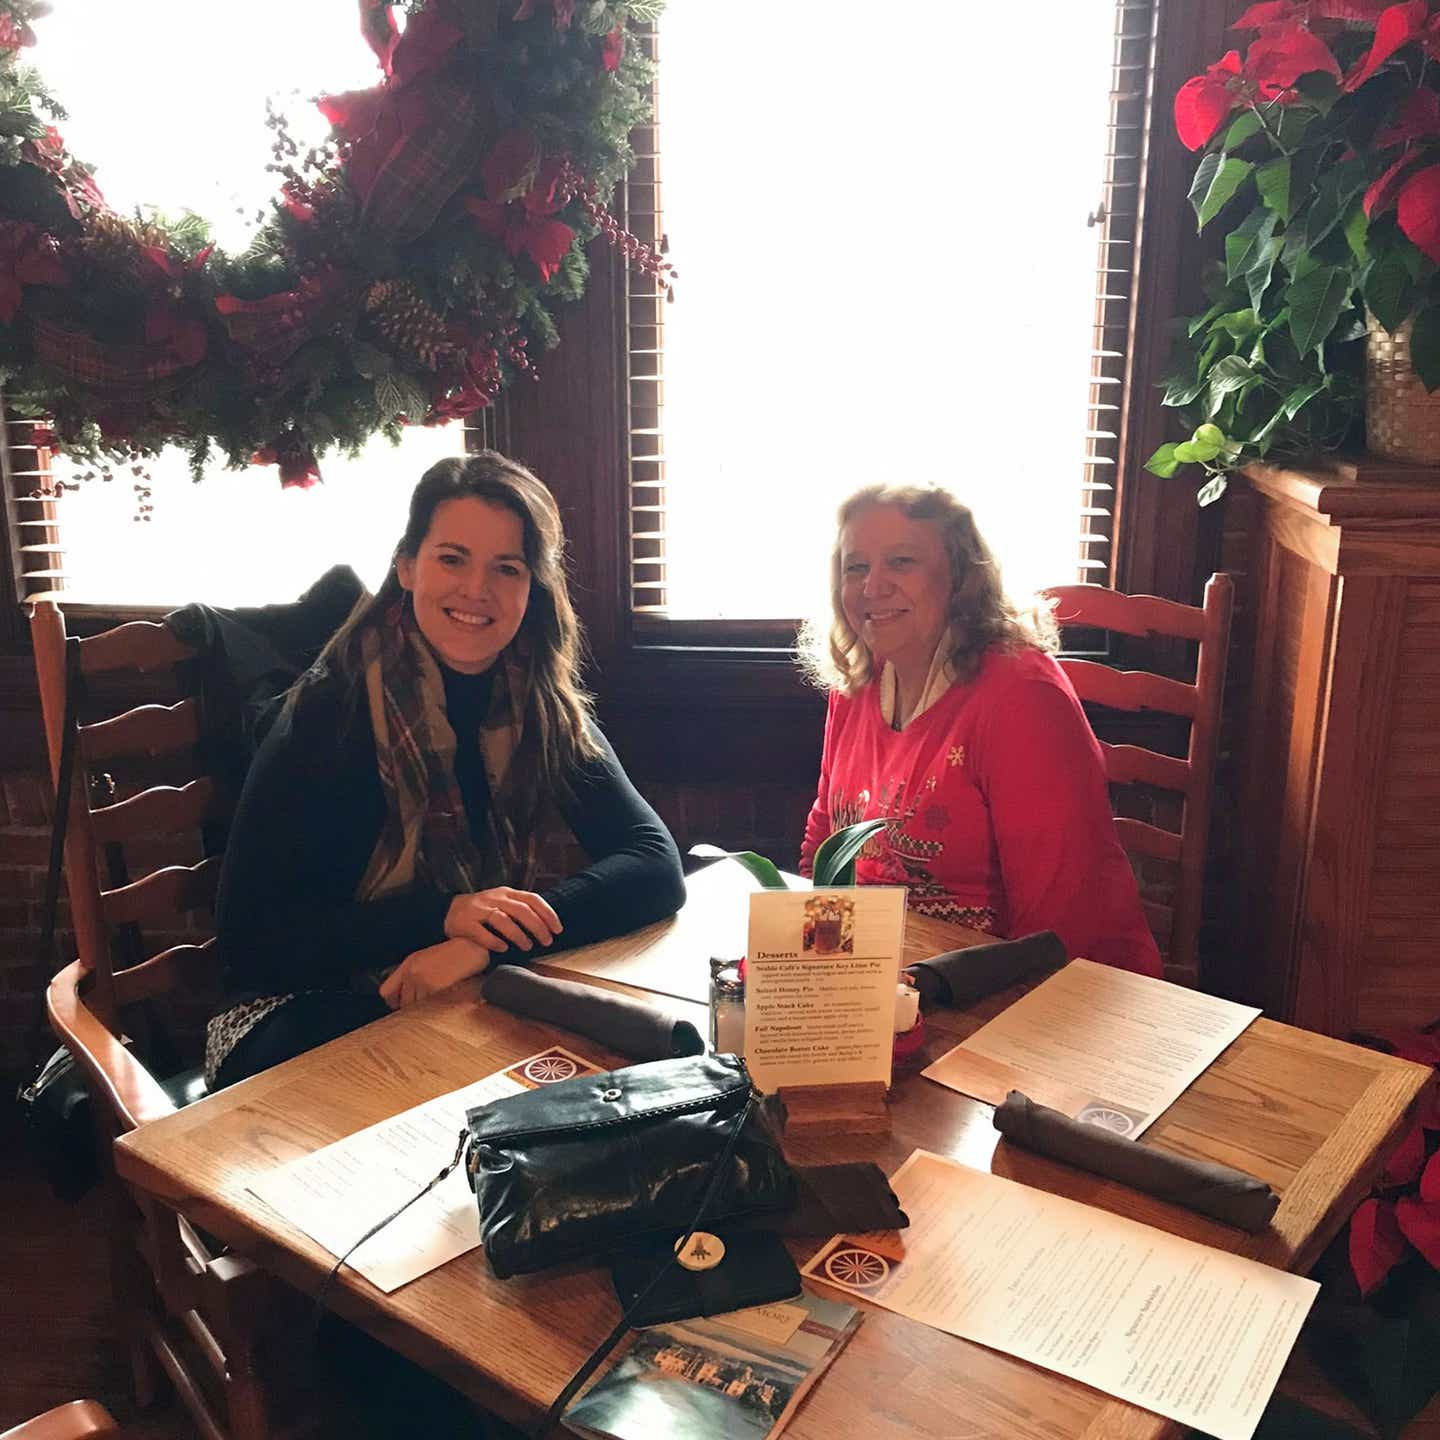 Author, Jenn C. Harmon (left), and her mother-in-law (right) seated near a table in front of a window while dining at the Stable Cafe.